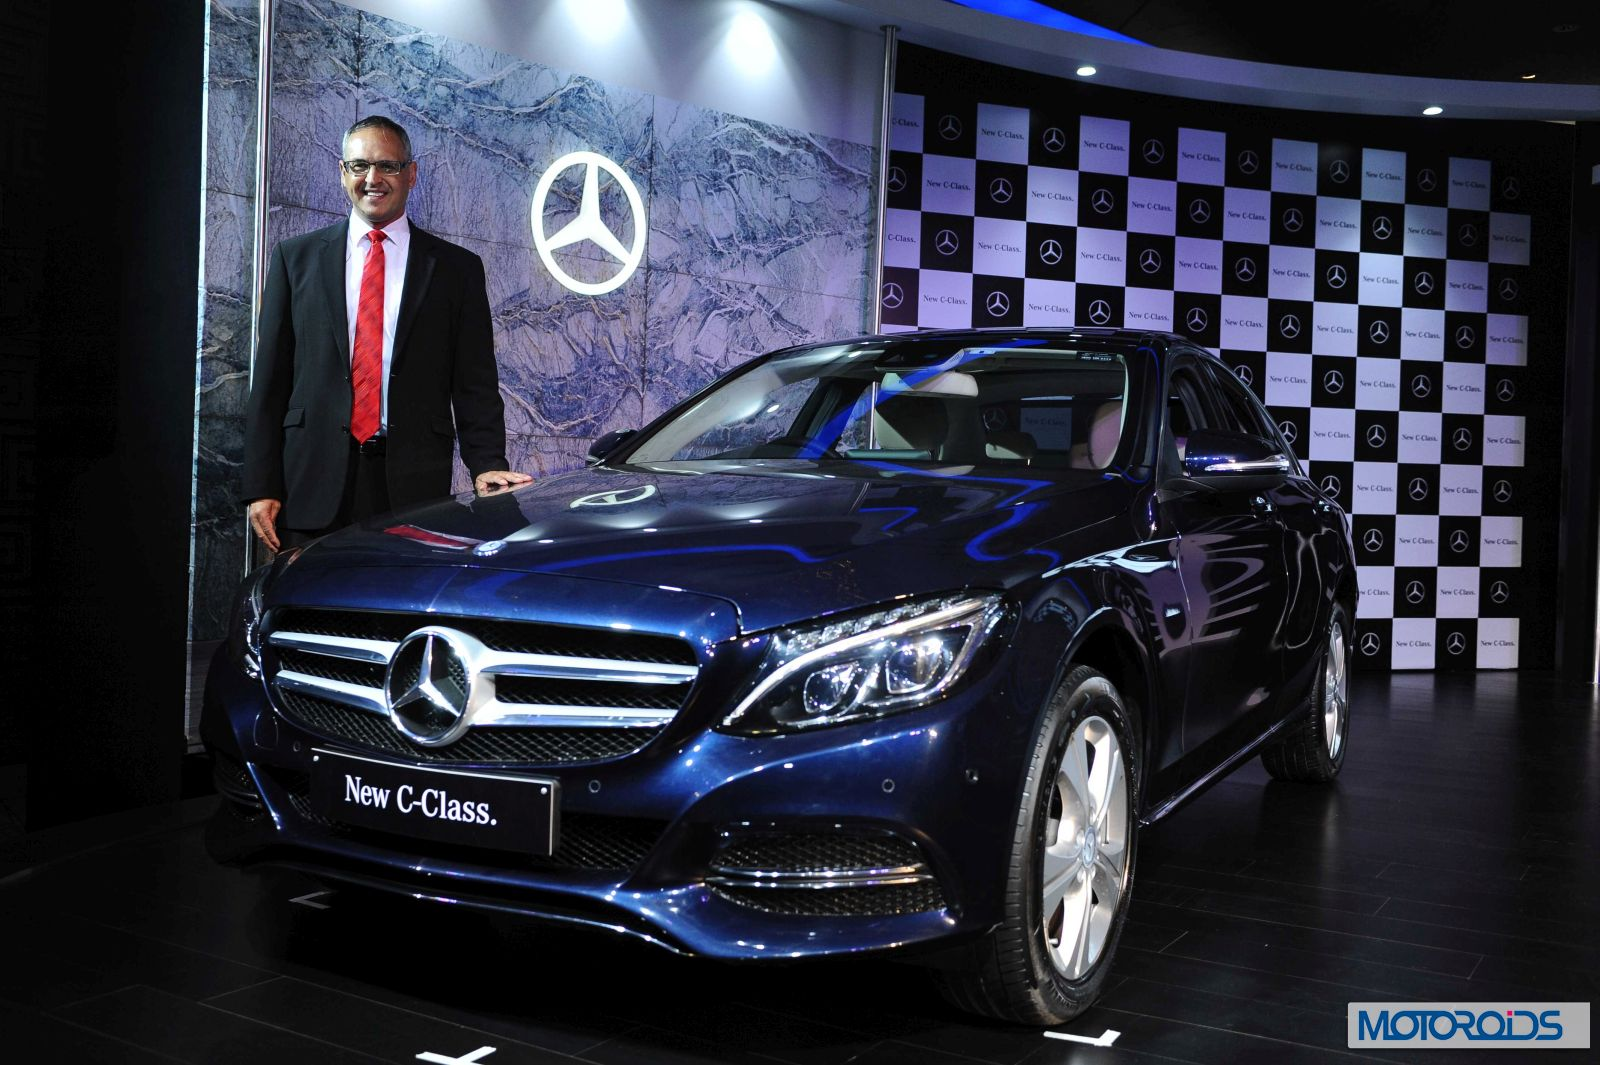 New 2015 mercedes c class launched in india price rs 40 for Mercedes benz 2015 c class price